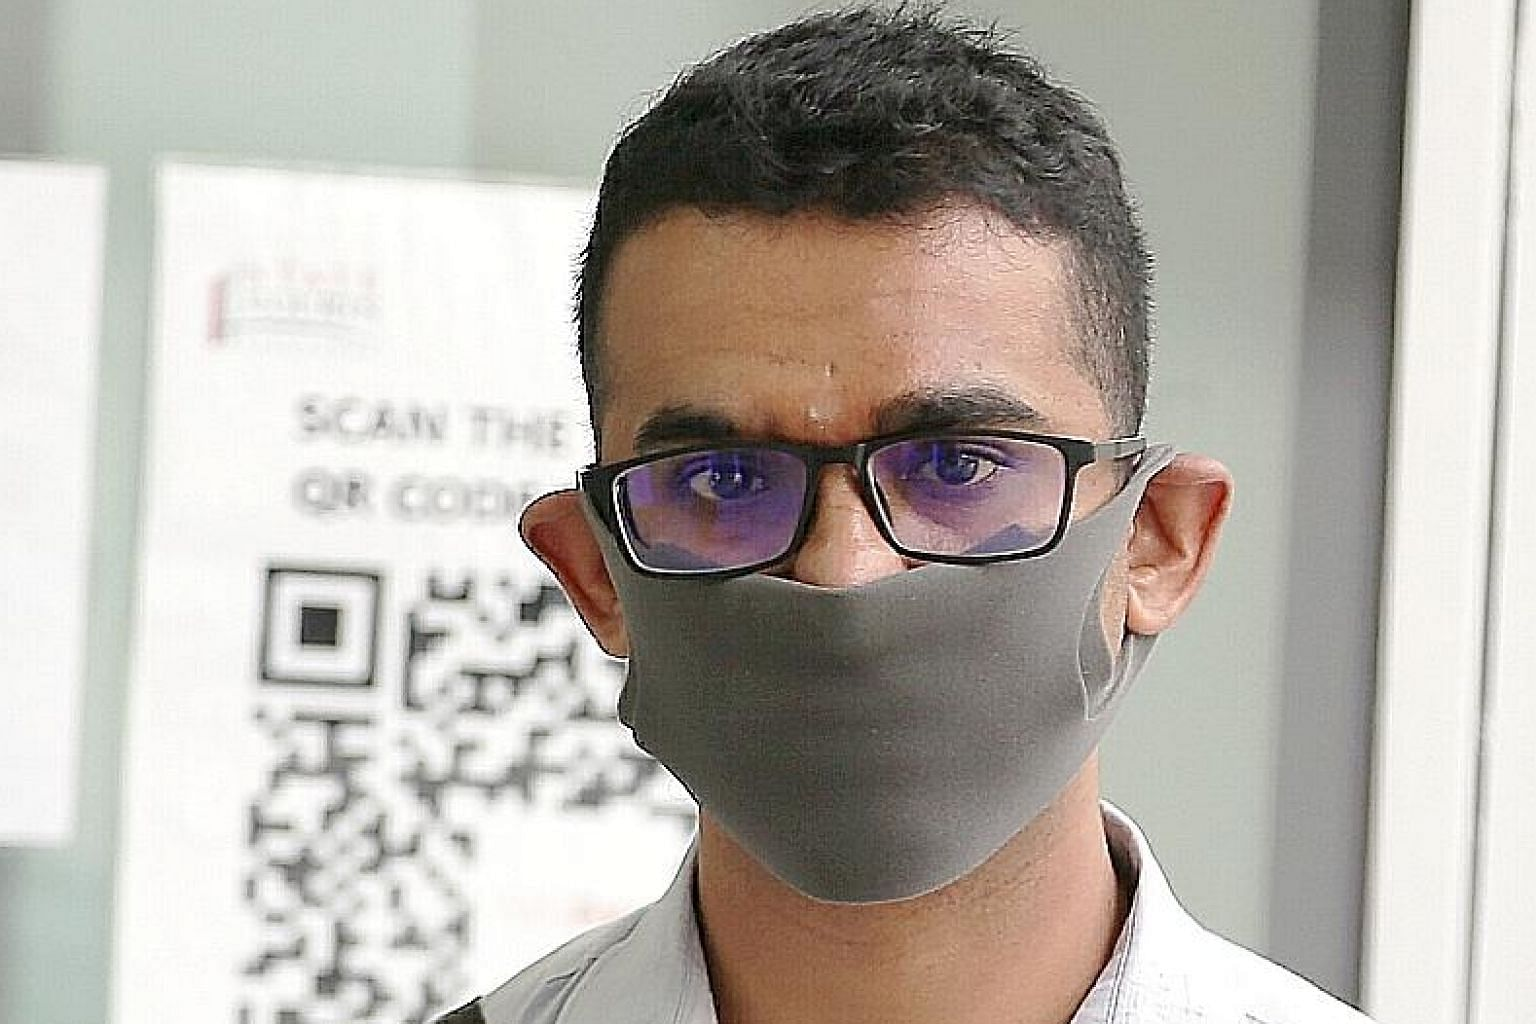 Mahendran Selvarajoo, who worked at Clementi Police Division, obtained sexual favours from two women on the pretext of helping them.